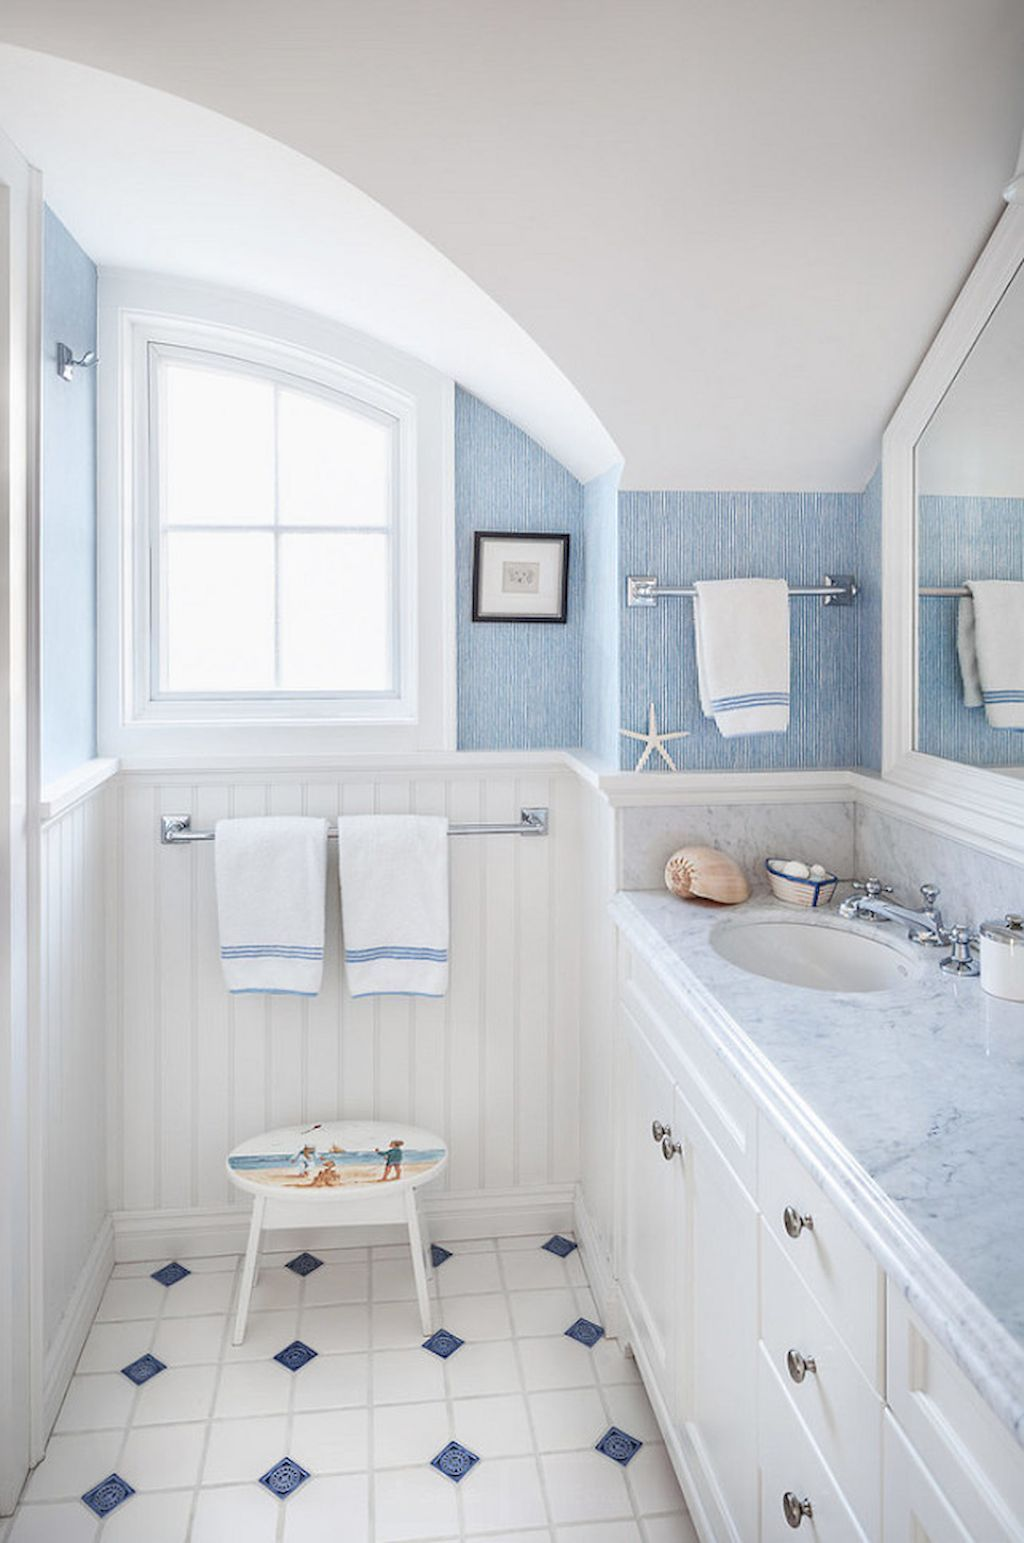 50 Cool Coastal Beach Bathroom Makeover Ideas | Beach bathrooms ...